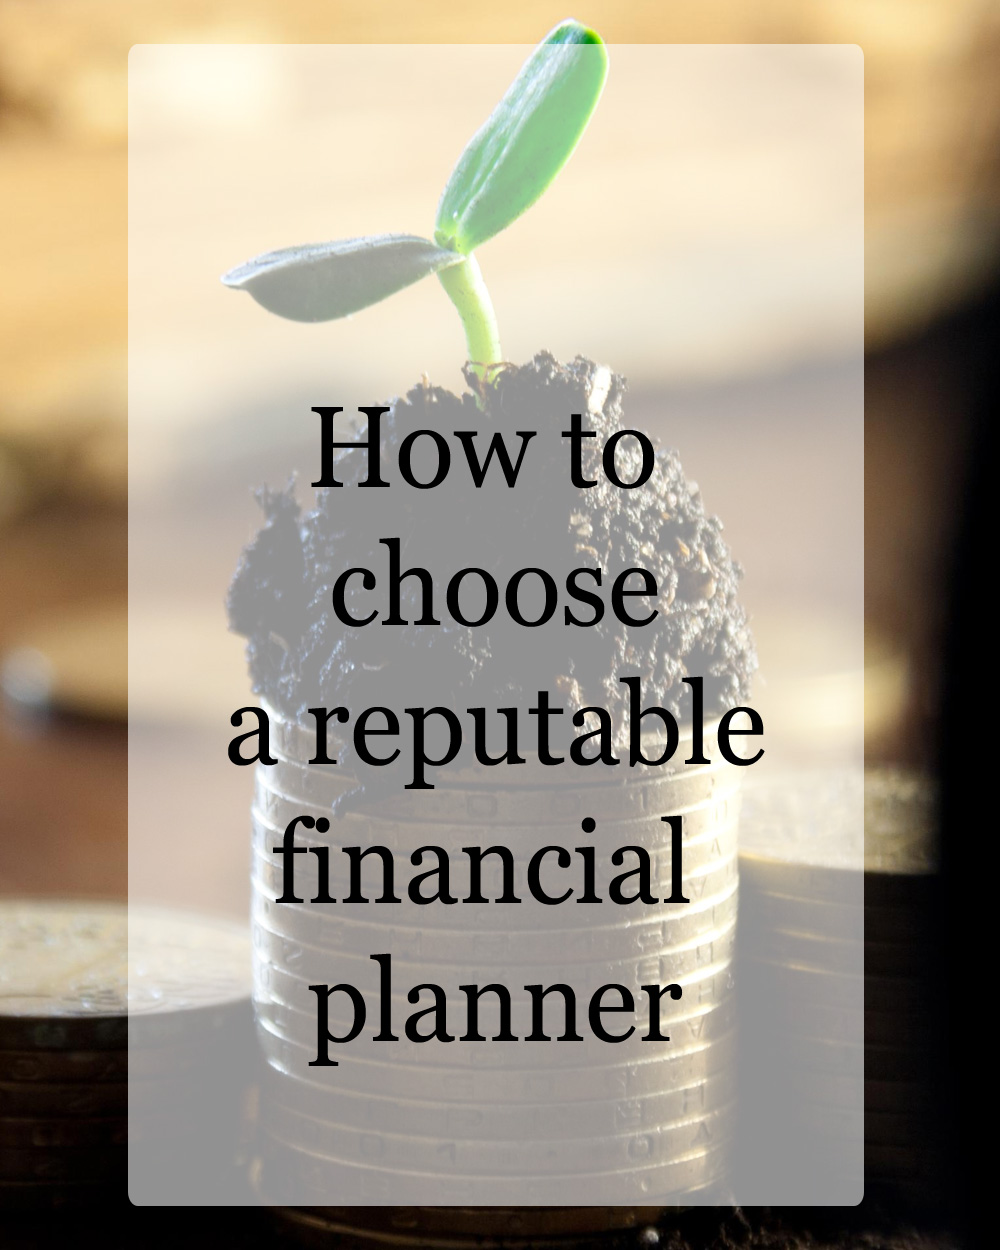 How to choose a reputable financial planner